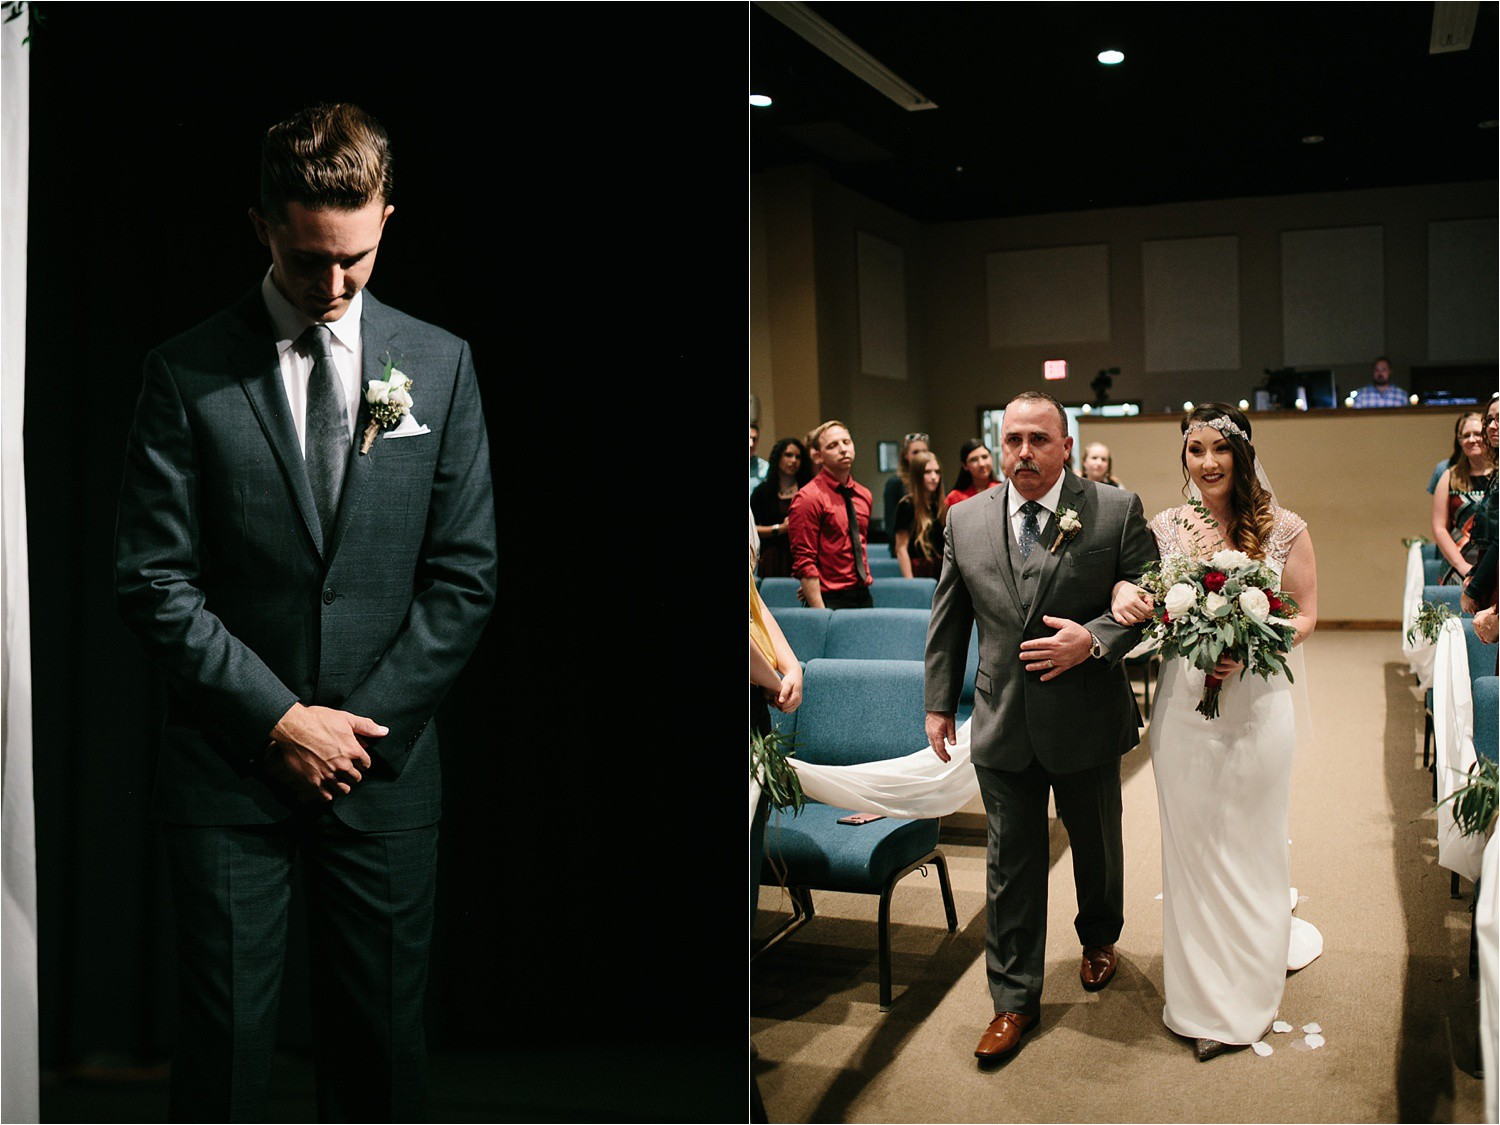 whittney-drew-__-an-intimate-wine-and-navy-wedding-in-an-industrial-venue-at-loft-123-in-paris-tx-by-north-texas-wedding-photographer-rachel-meagan-photography-_-052